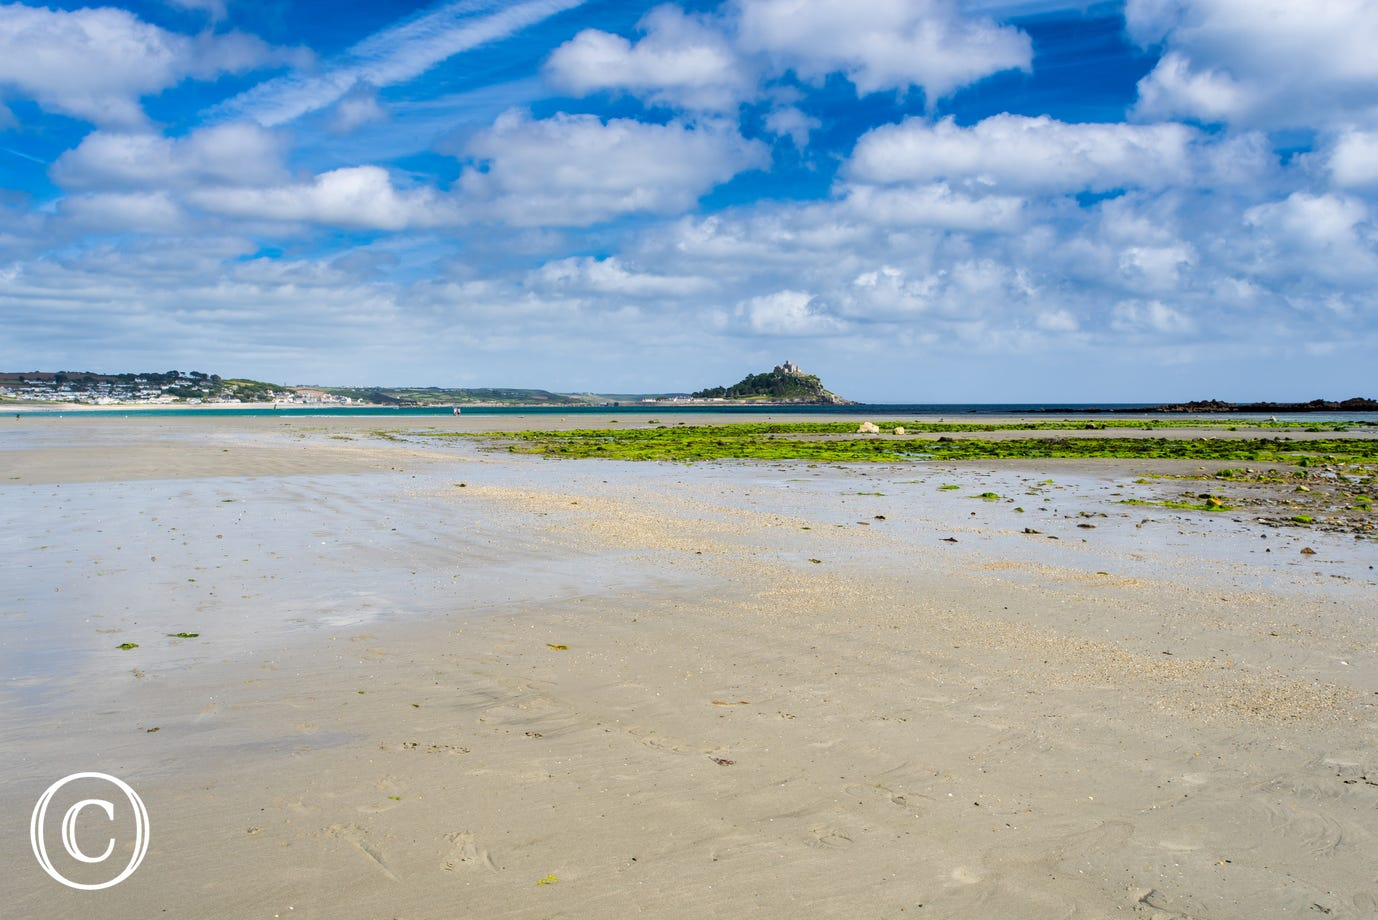 Marazion beach, just a stone's throw from Pebbles